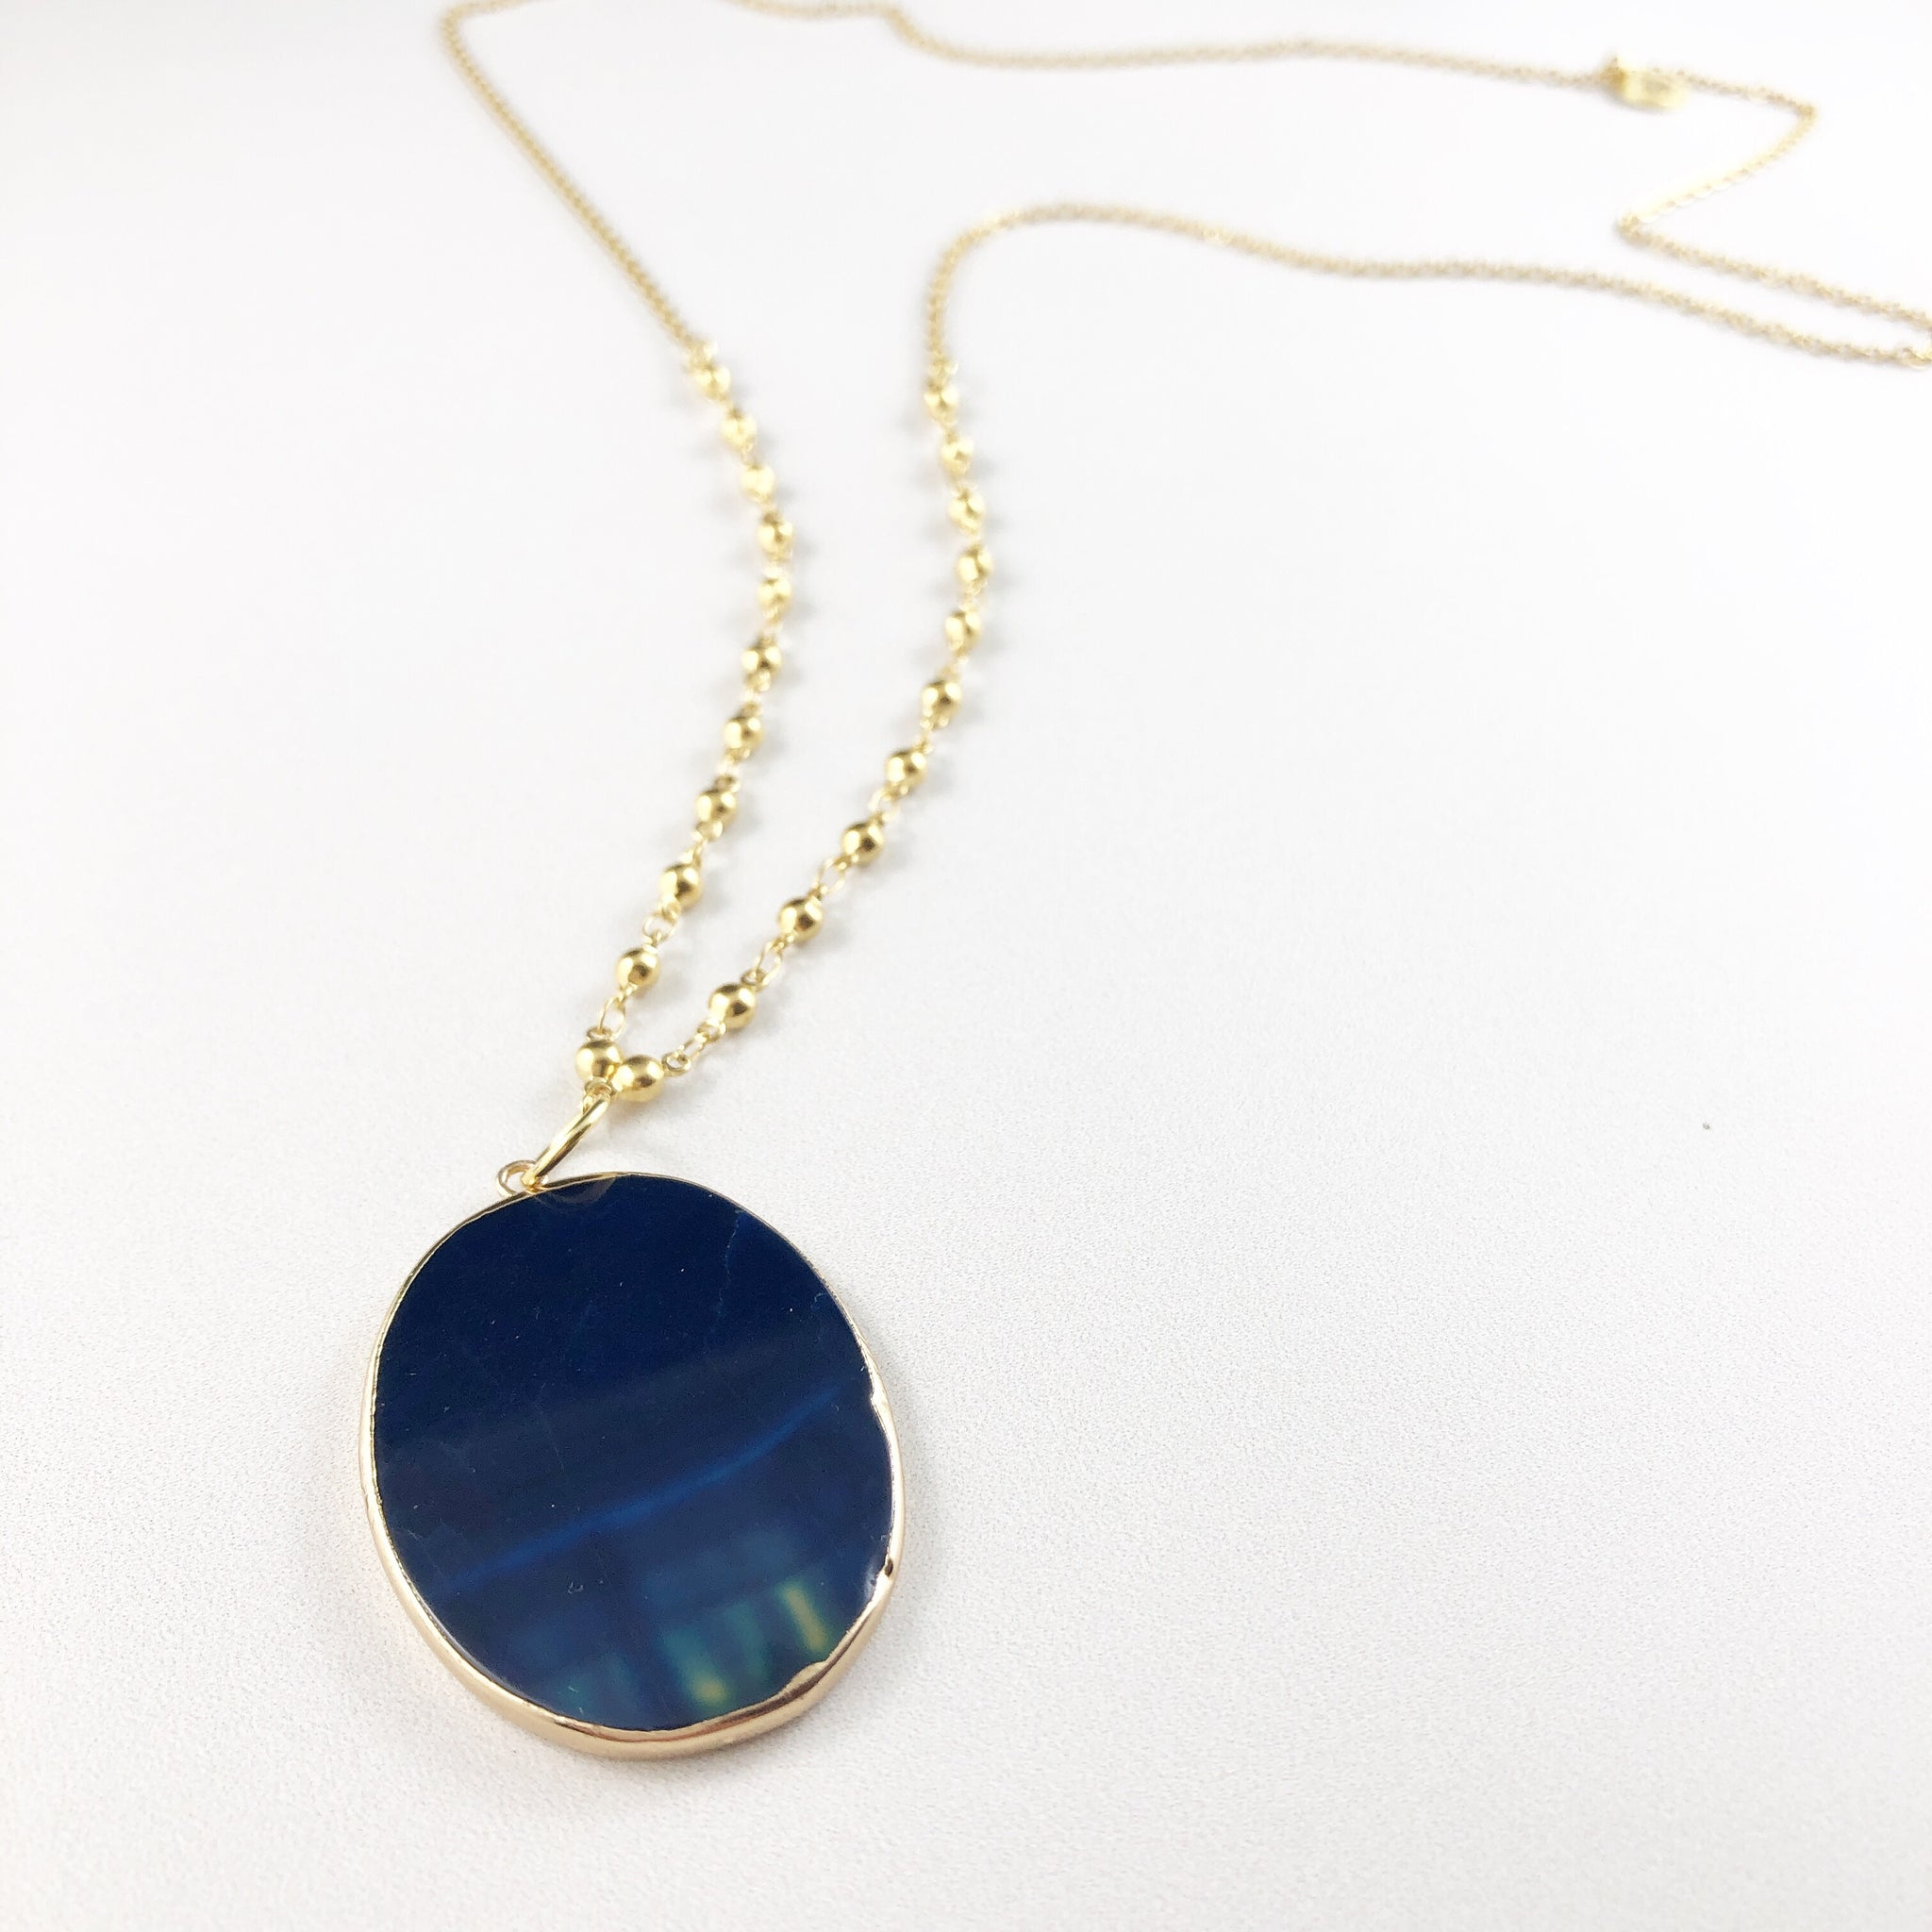 Midnight Blue Agate Stone Pendant